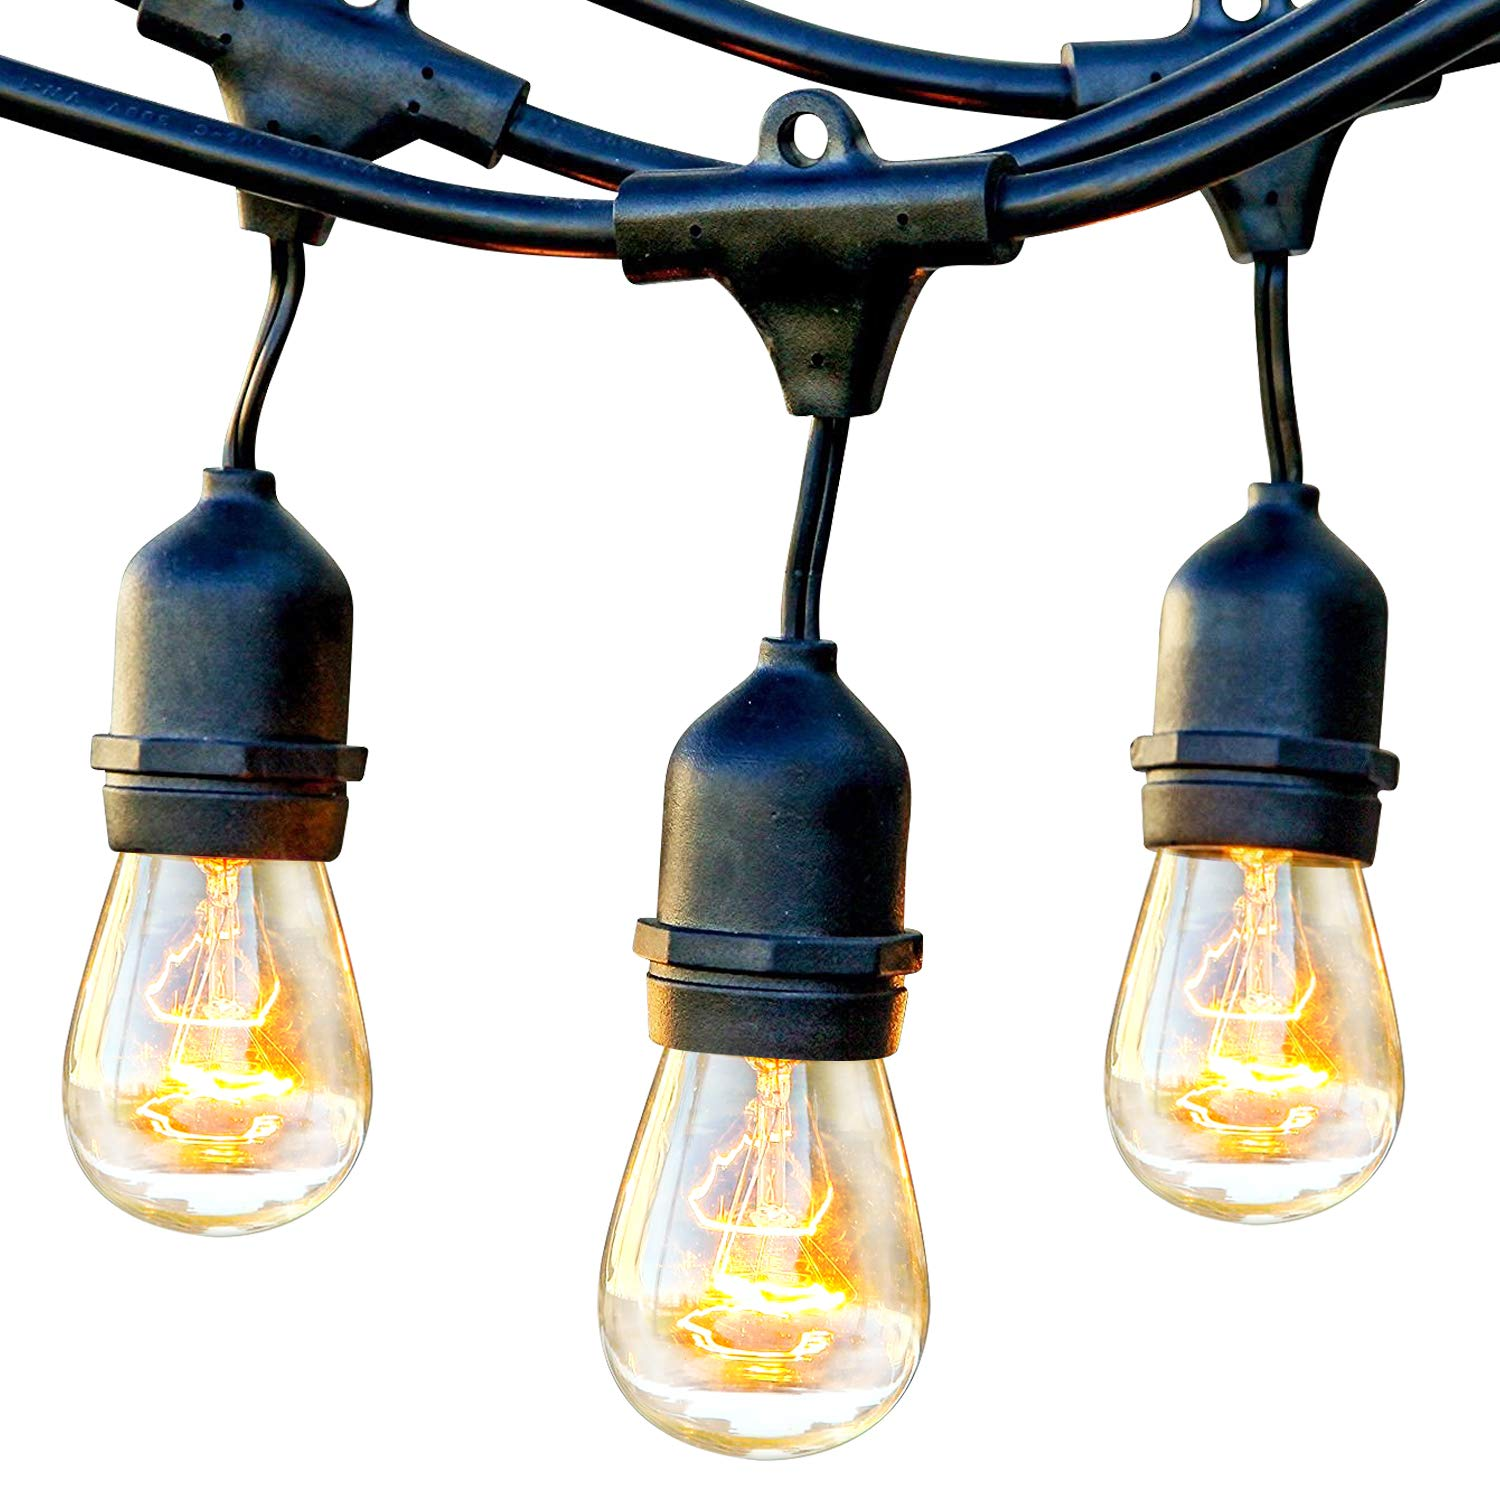 hot sale online 75bc1 39757 Brightech Ambience Pro - Waterproof Outdoor String Lights - Hanging  Industrial 11W Edison Bulbs - 48 Ft Vintage Bistro Lights - Create Great  Ambience ...